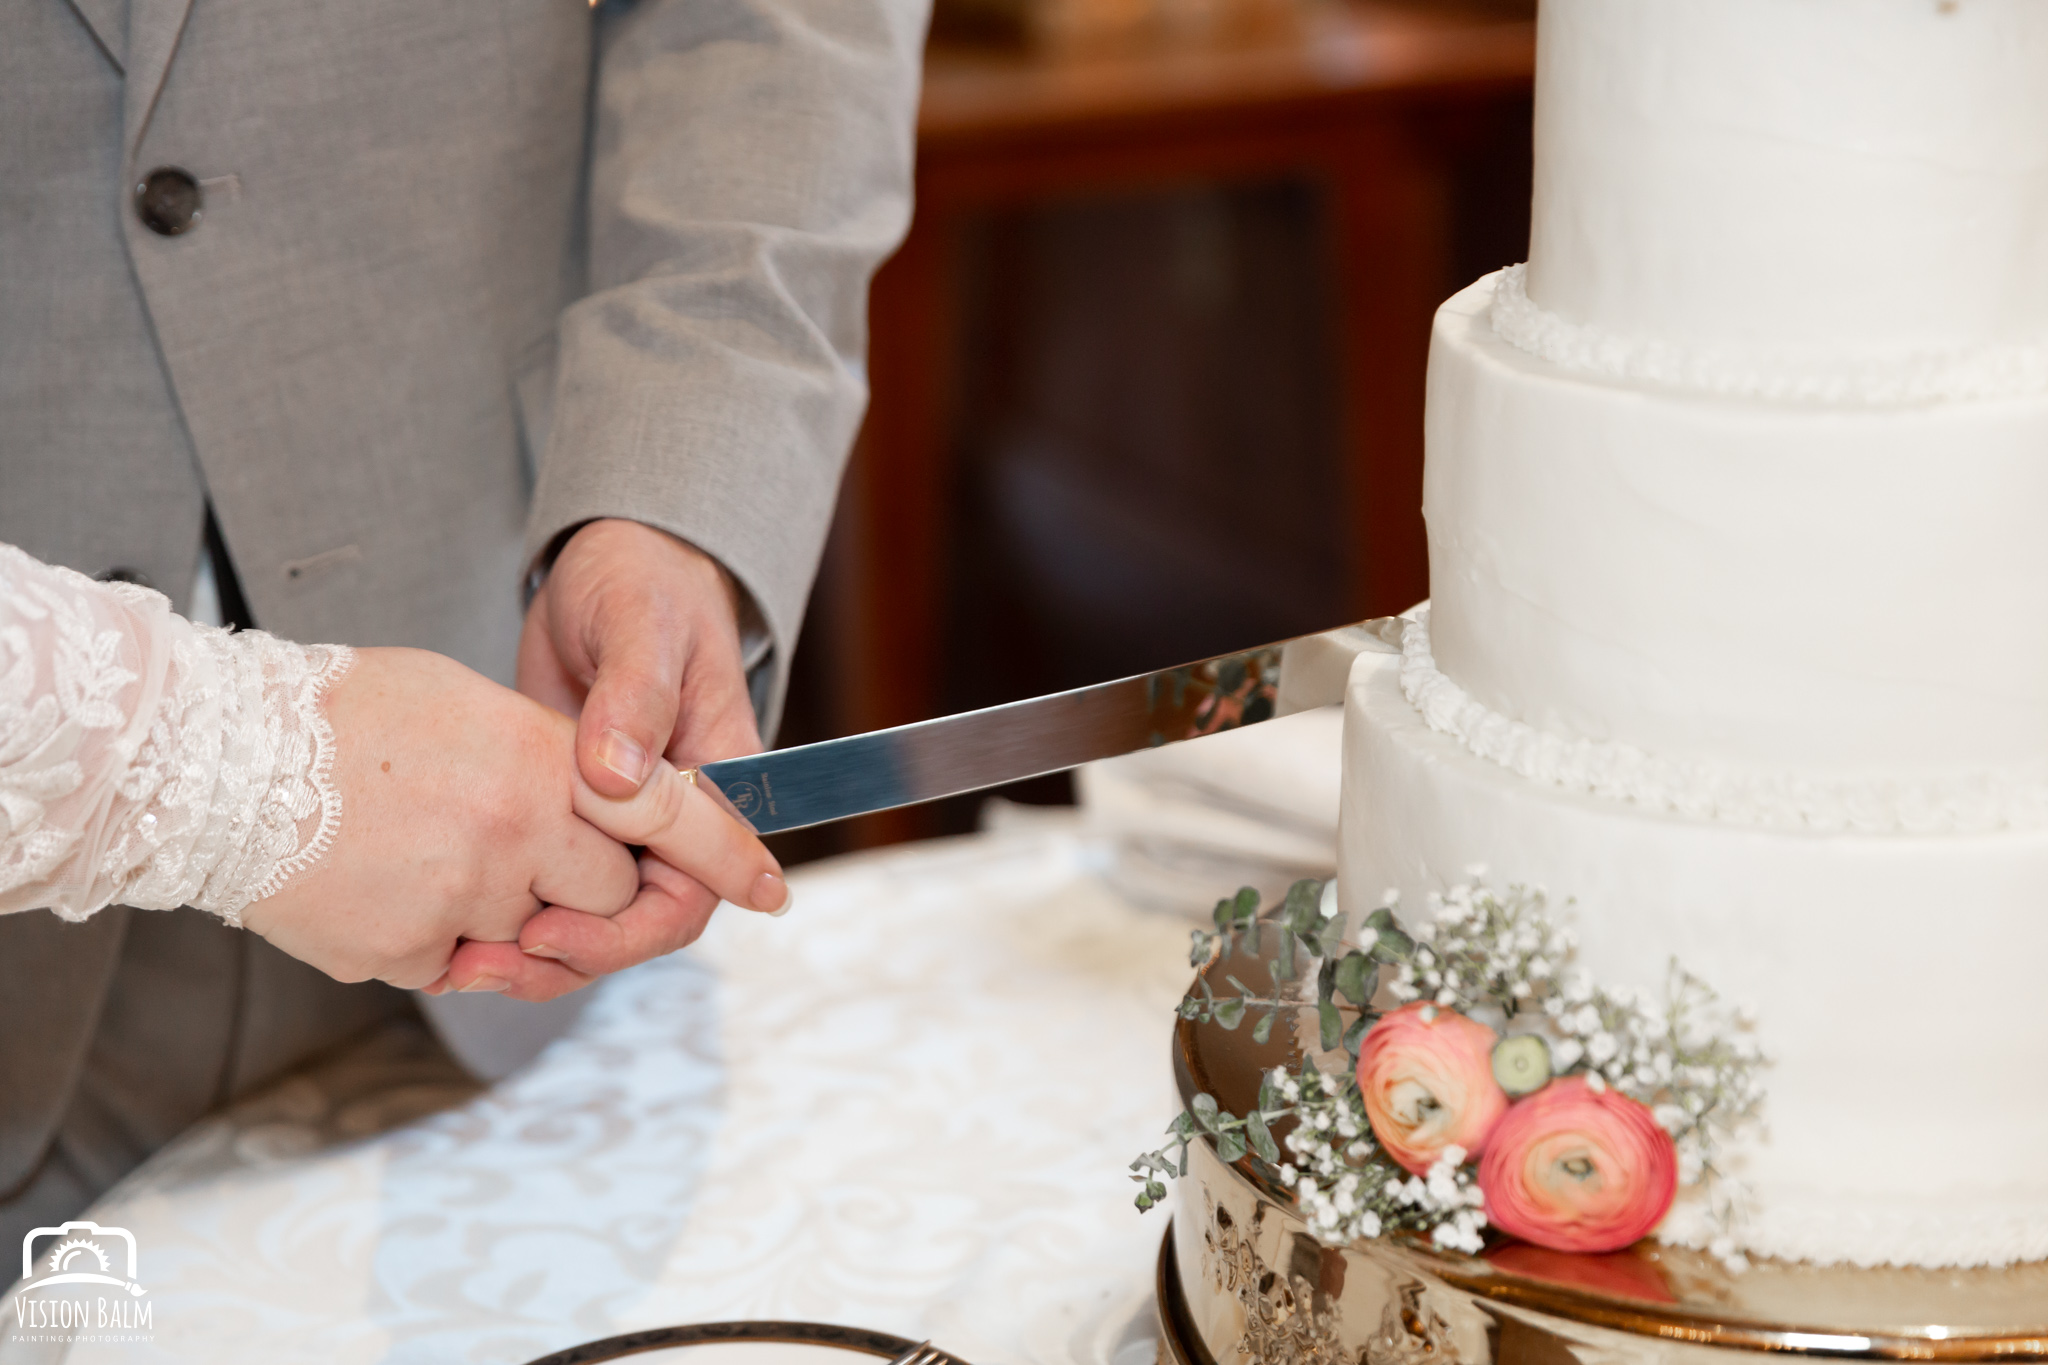 Wedding photo of groom and bride cutting the wedding cake in the venue of Zuka's Hilltop Barn by Vision Balm in Charleston, SC.